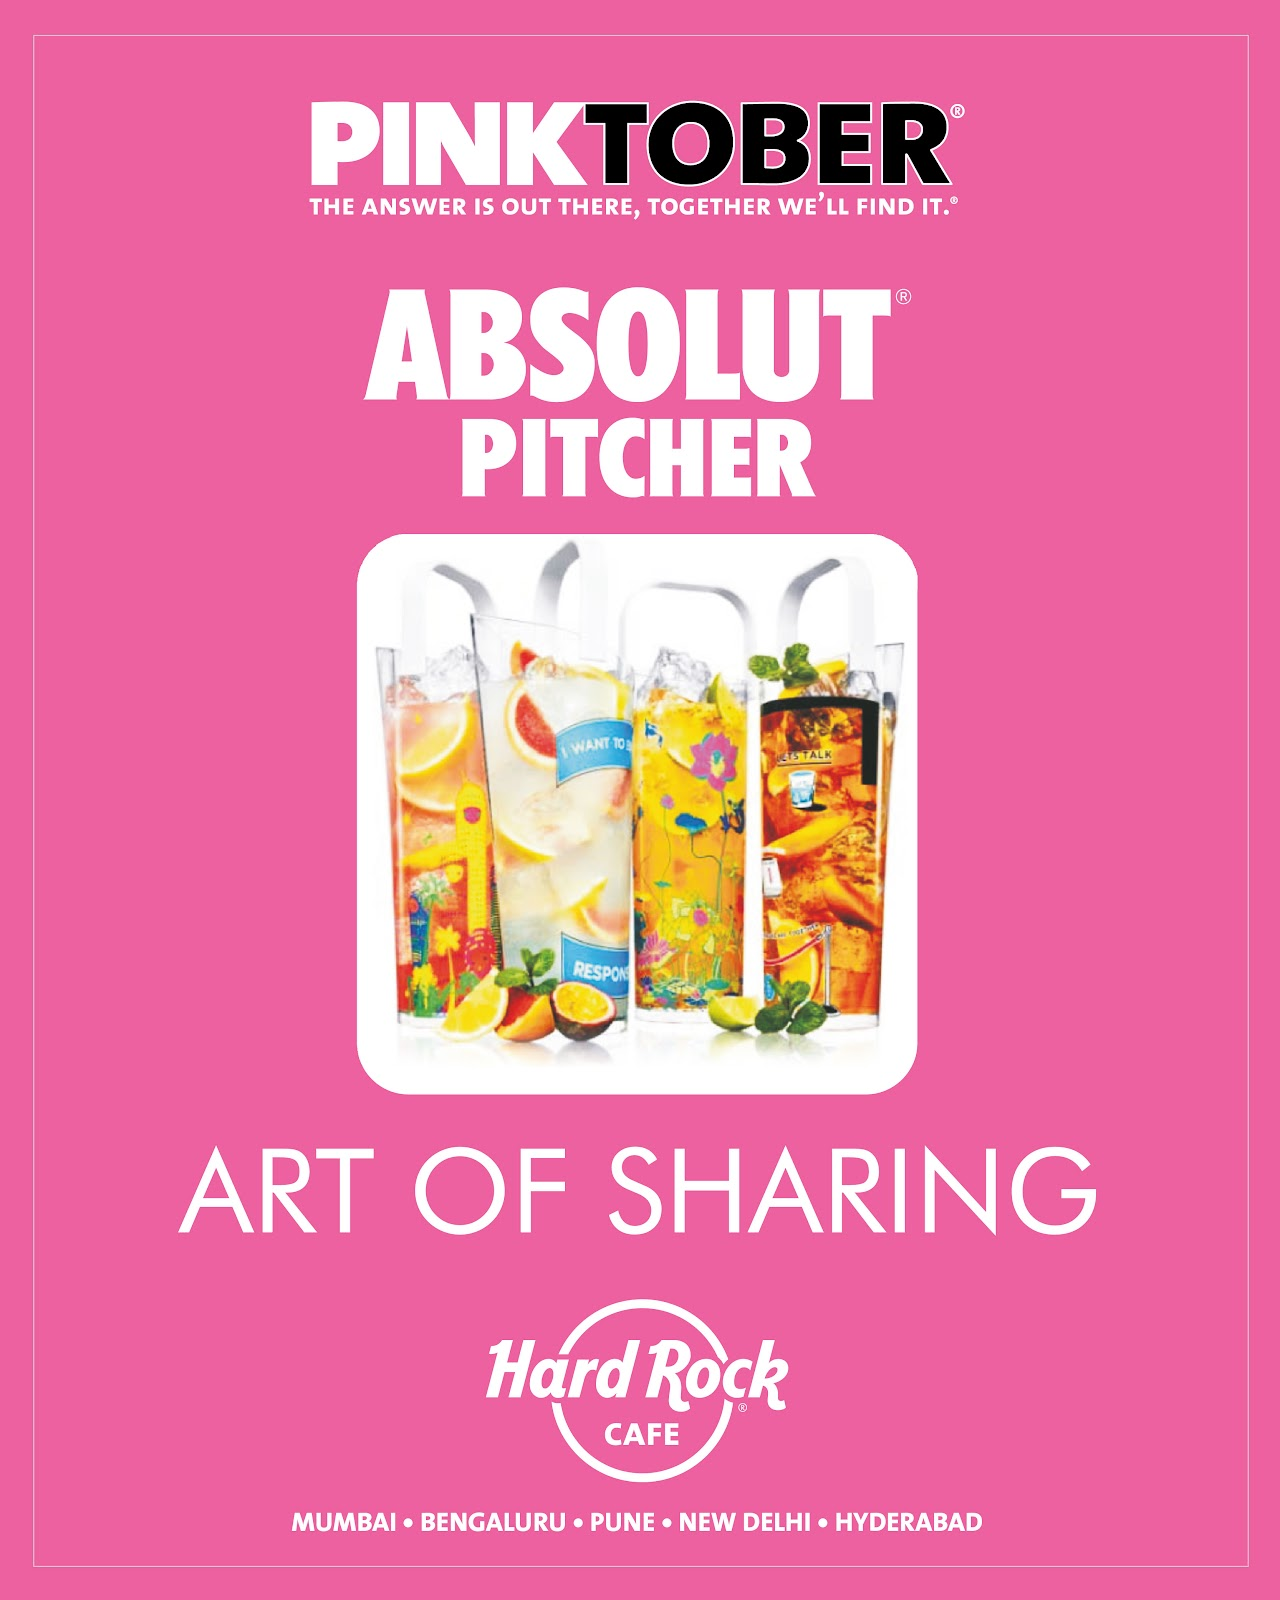 Photo: Hard Rock's promotion of PINKTOBER-themed alcoholic cocktails